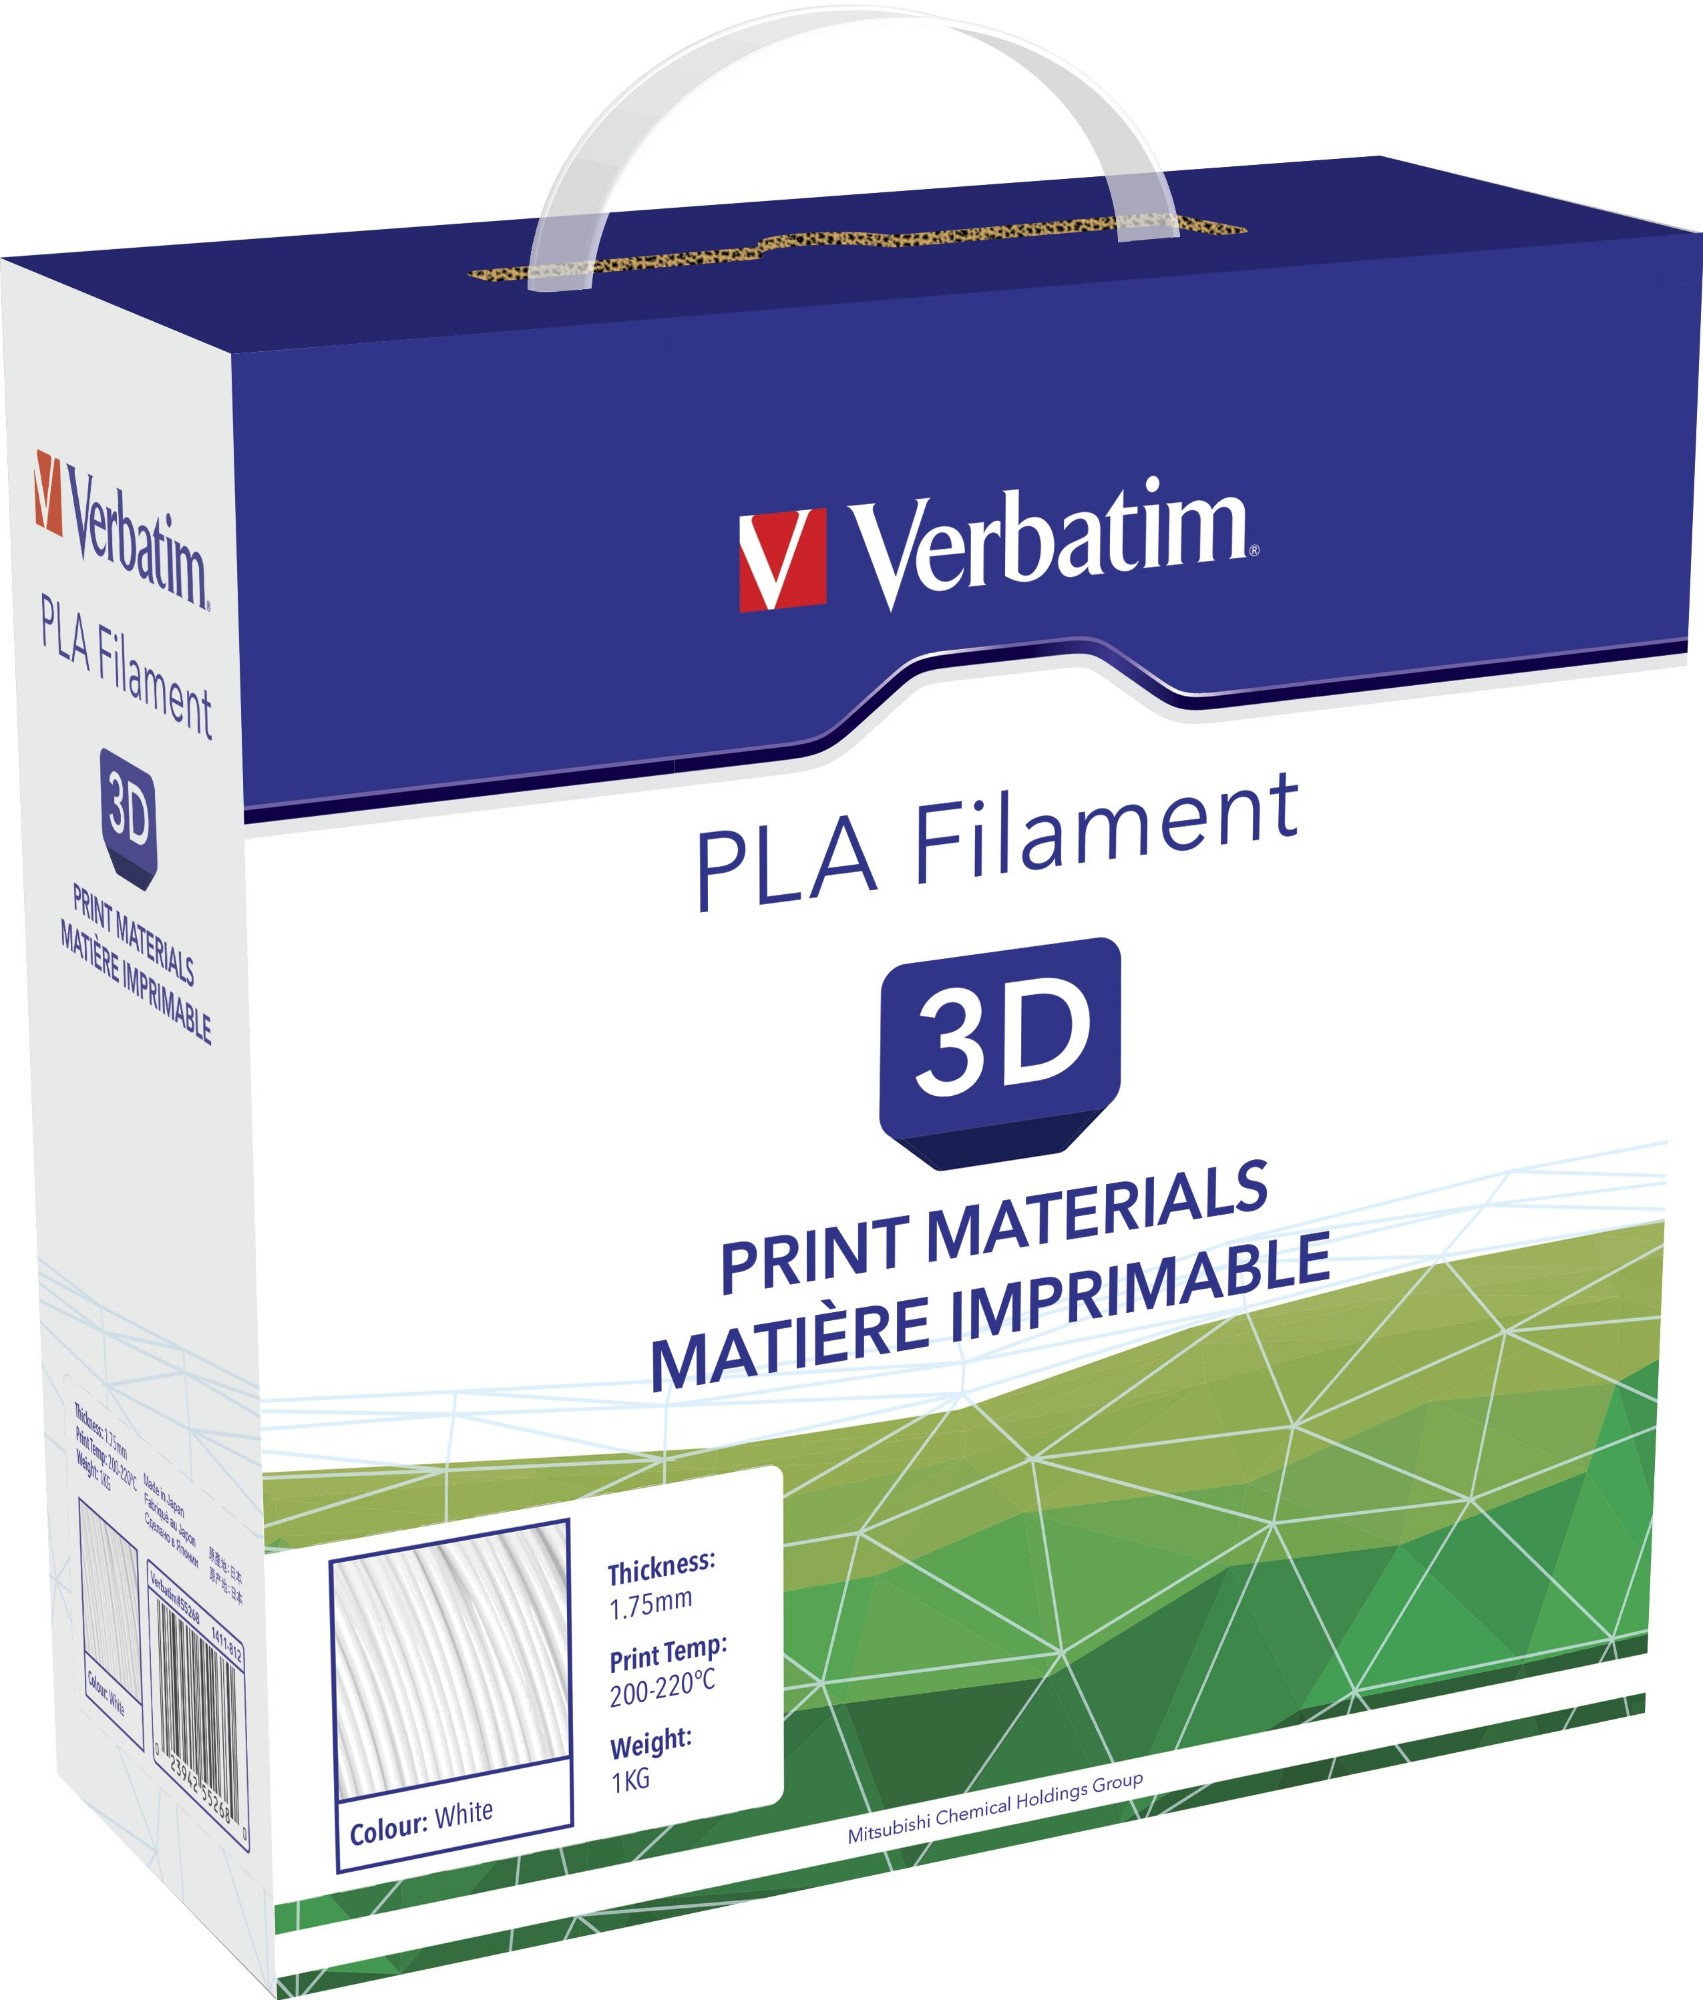 Vb55268 Verbatim 3d Printer Filament High Quality And Inexpensive Pla 1.75mm White 1kg